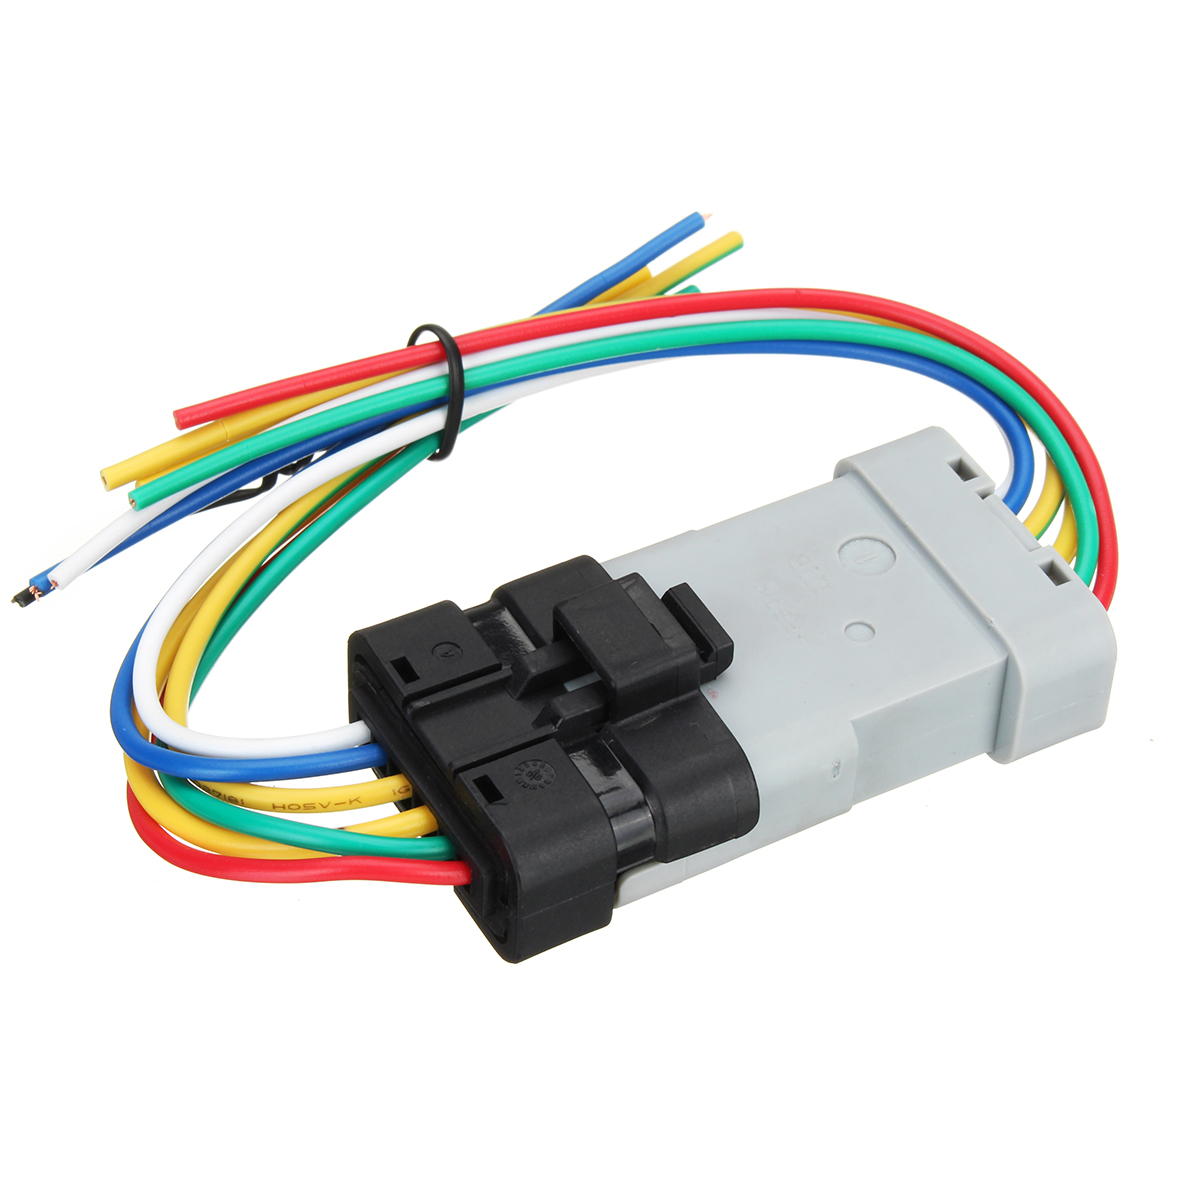 Renault Clio Wiring Harness 2005